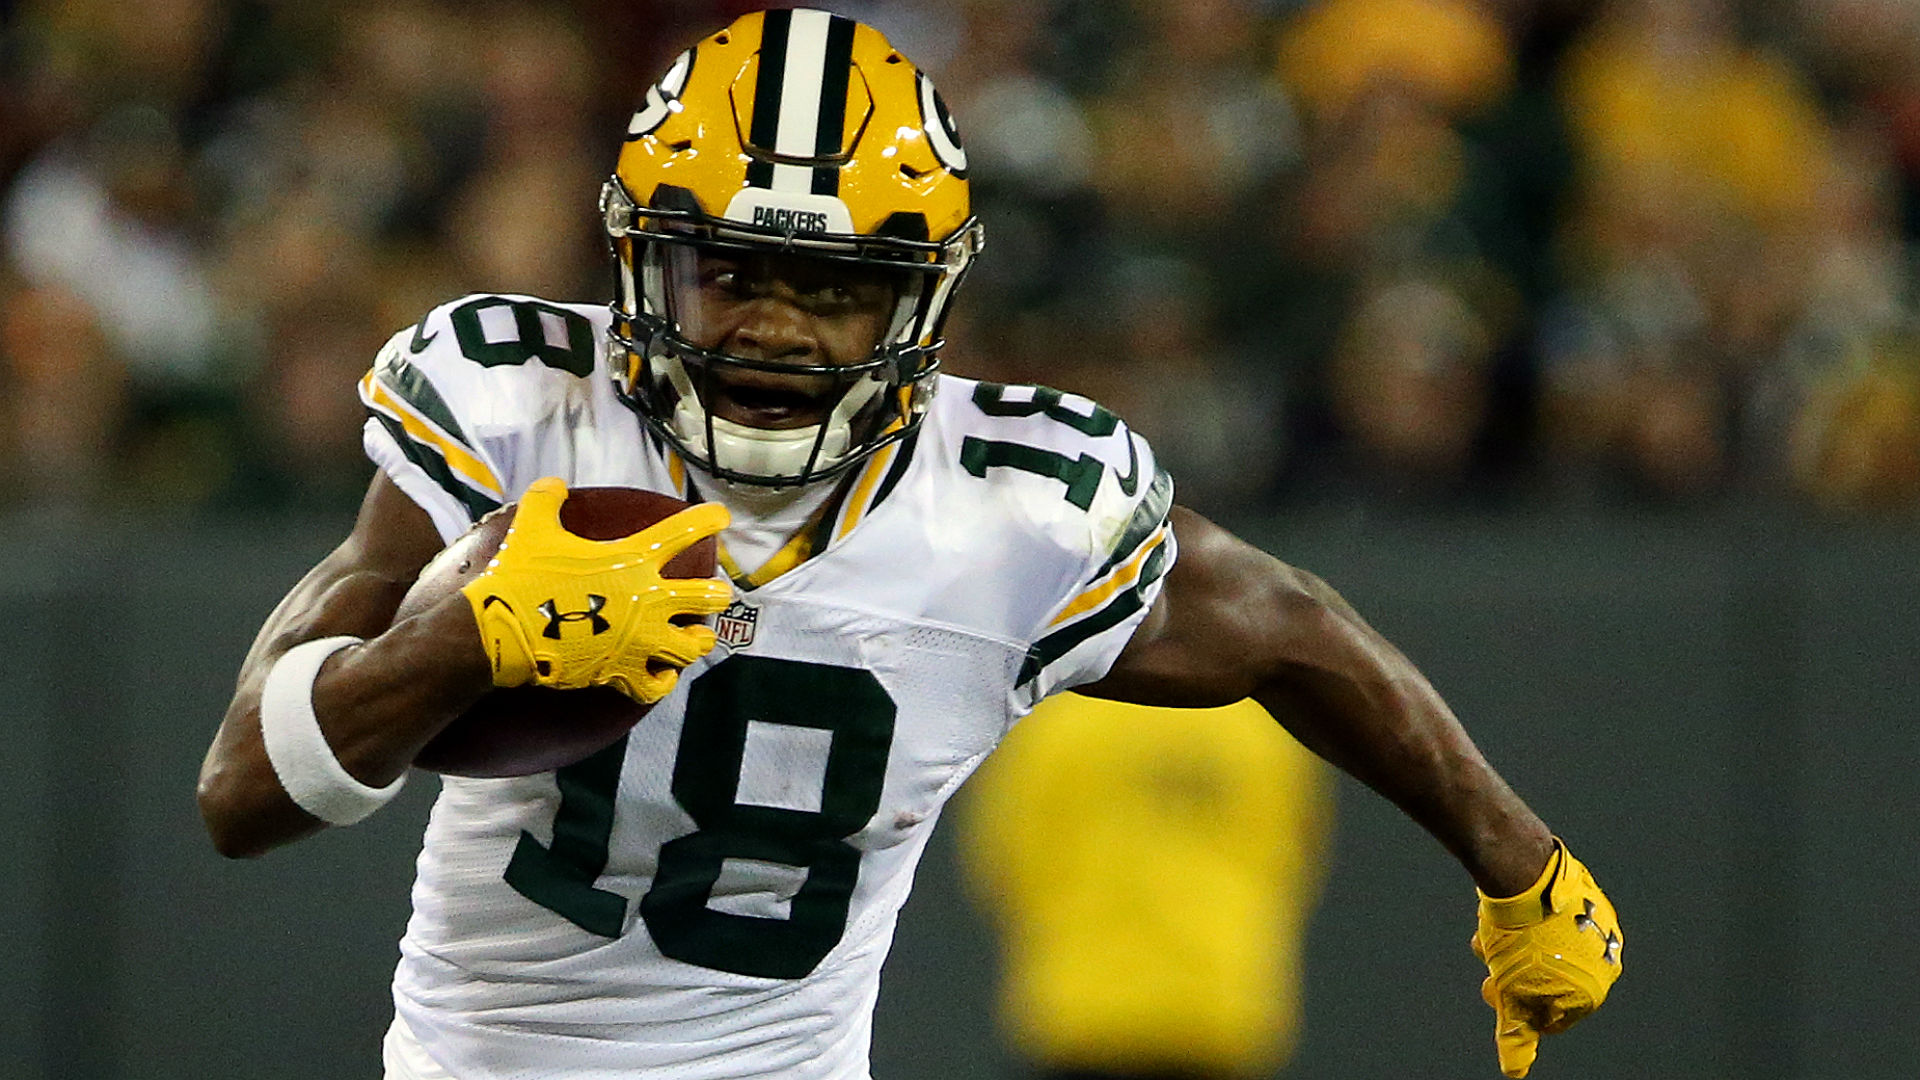 Randall Cobb Joining Cowboys; Patriots' Wideout Options Dwindling